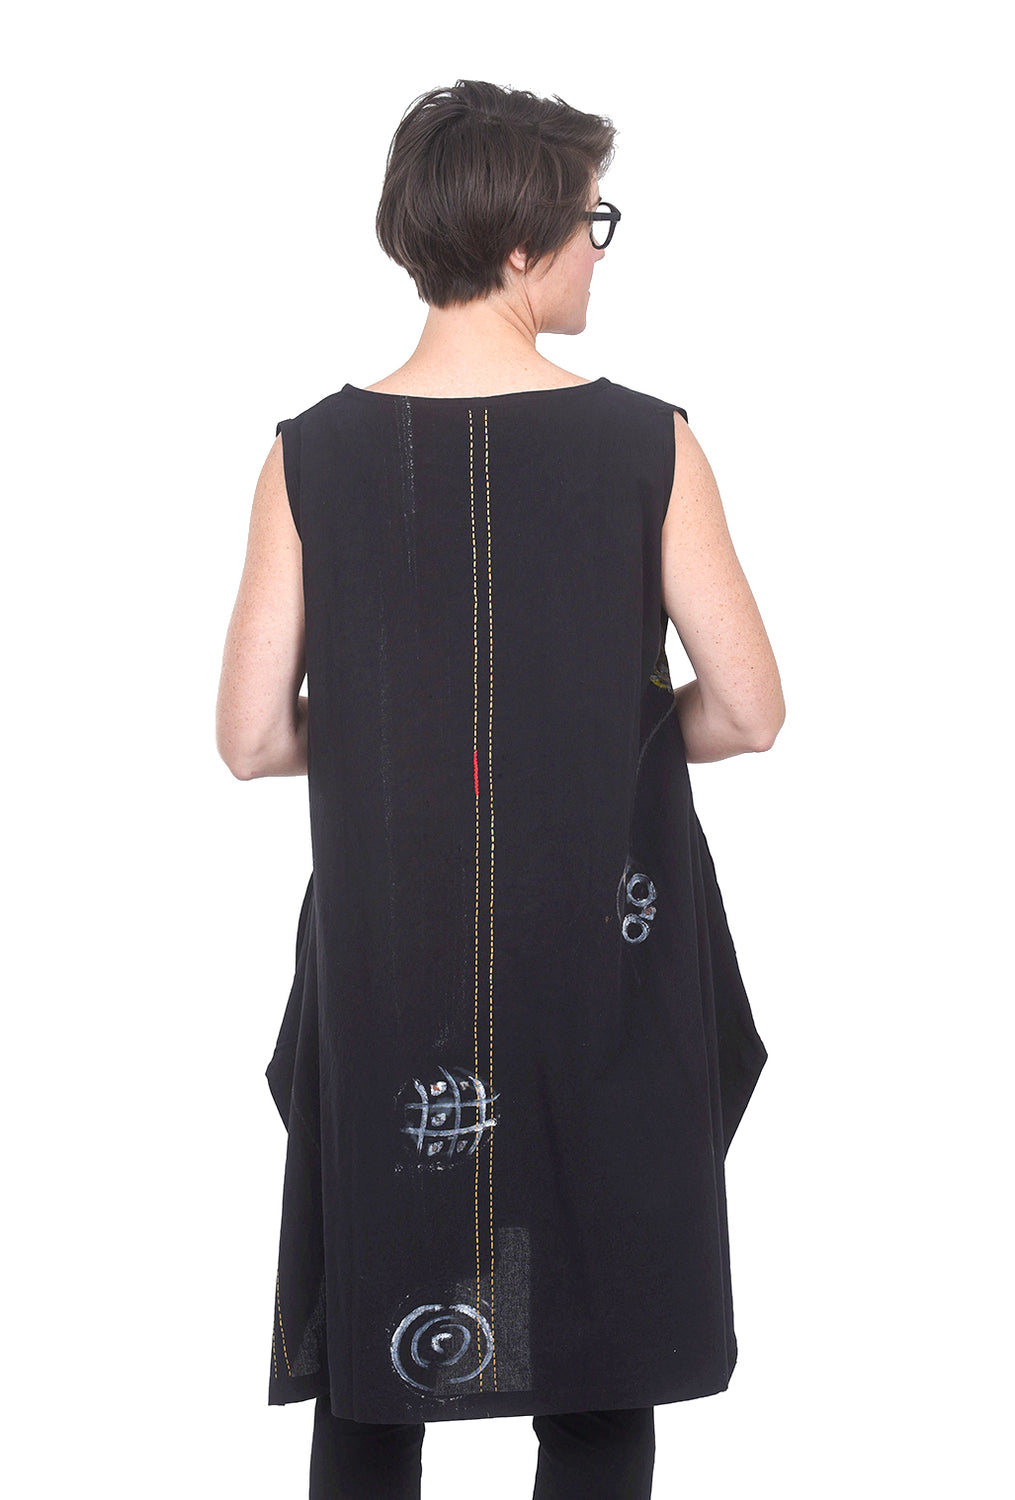 Mona Lisa Triangle Marble Tunic, Black One Size Black